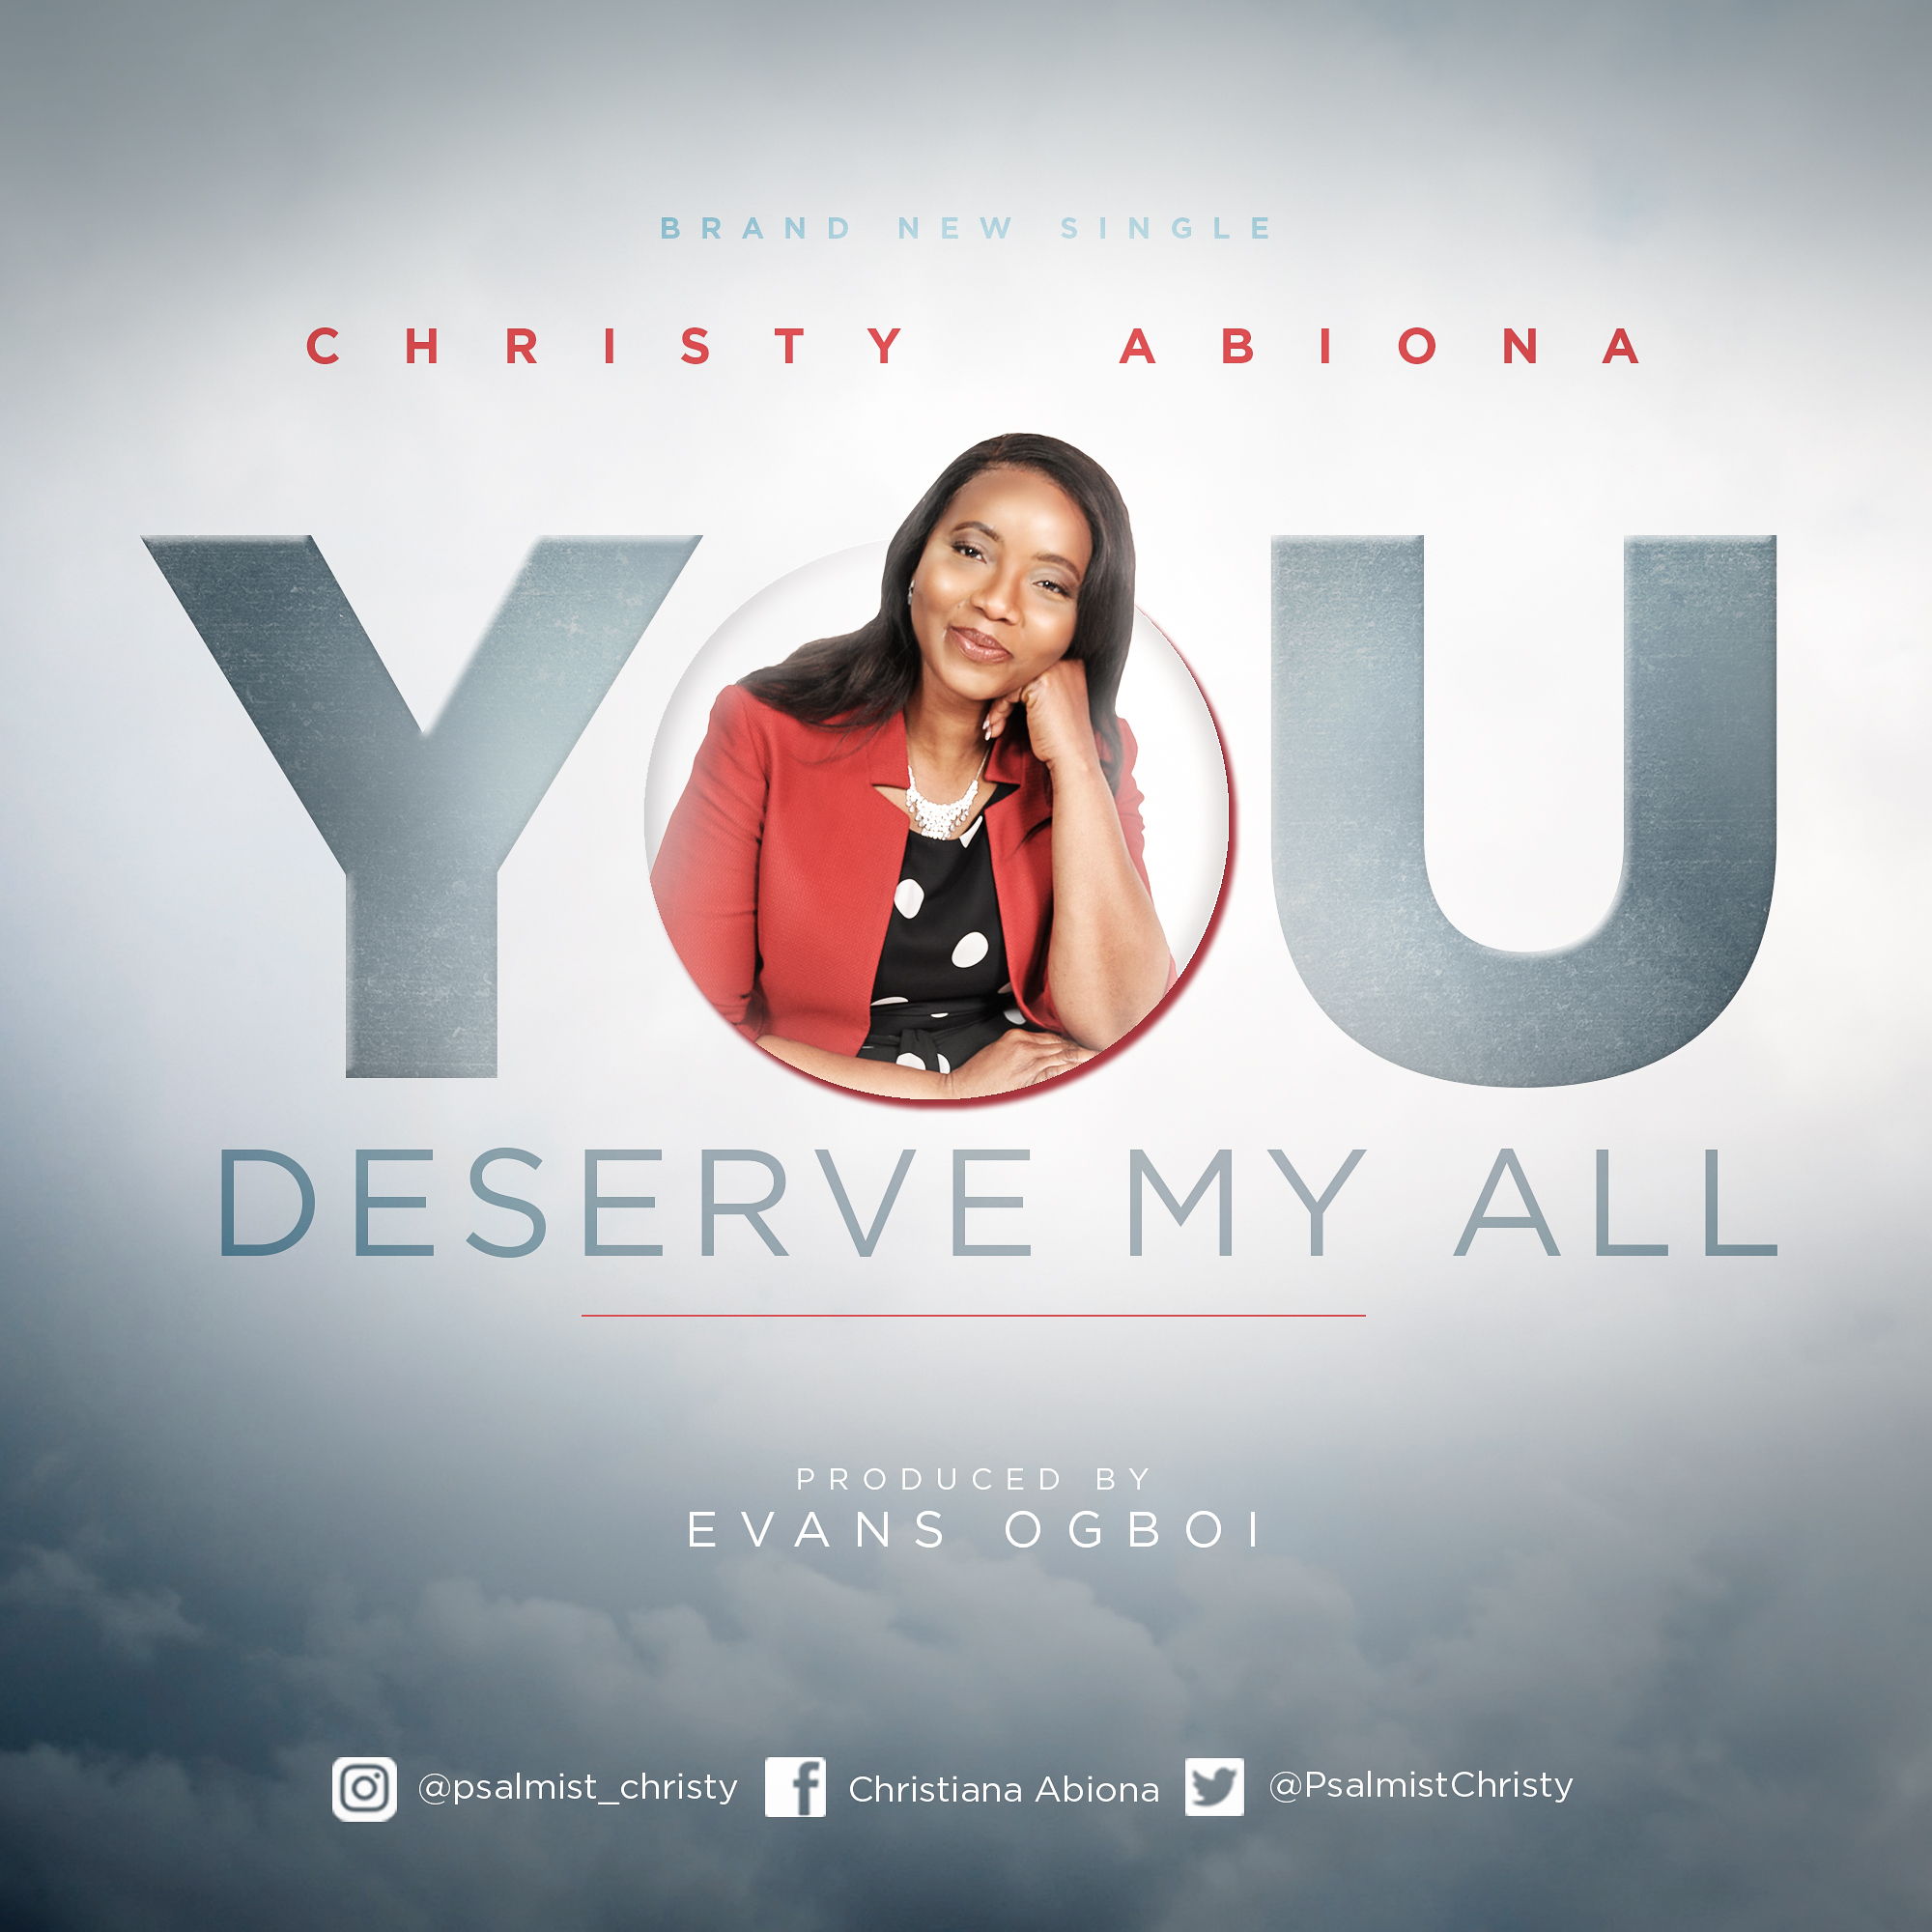 You Deserve My All -  Christy Abiona produced by Evans Ogboi